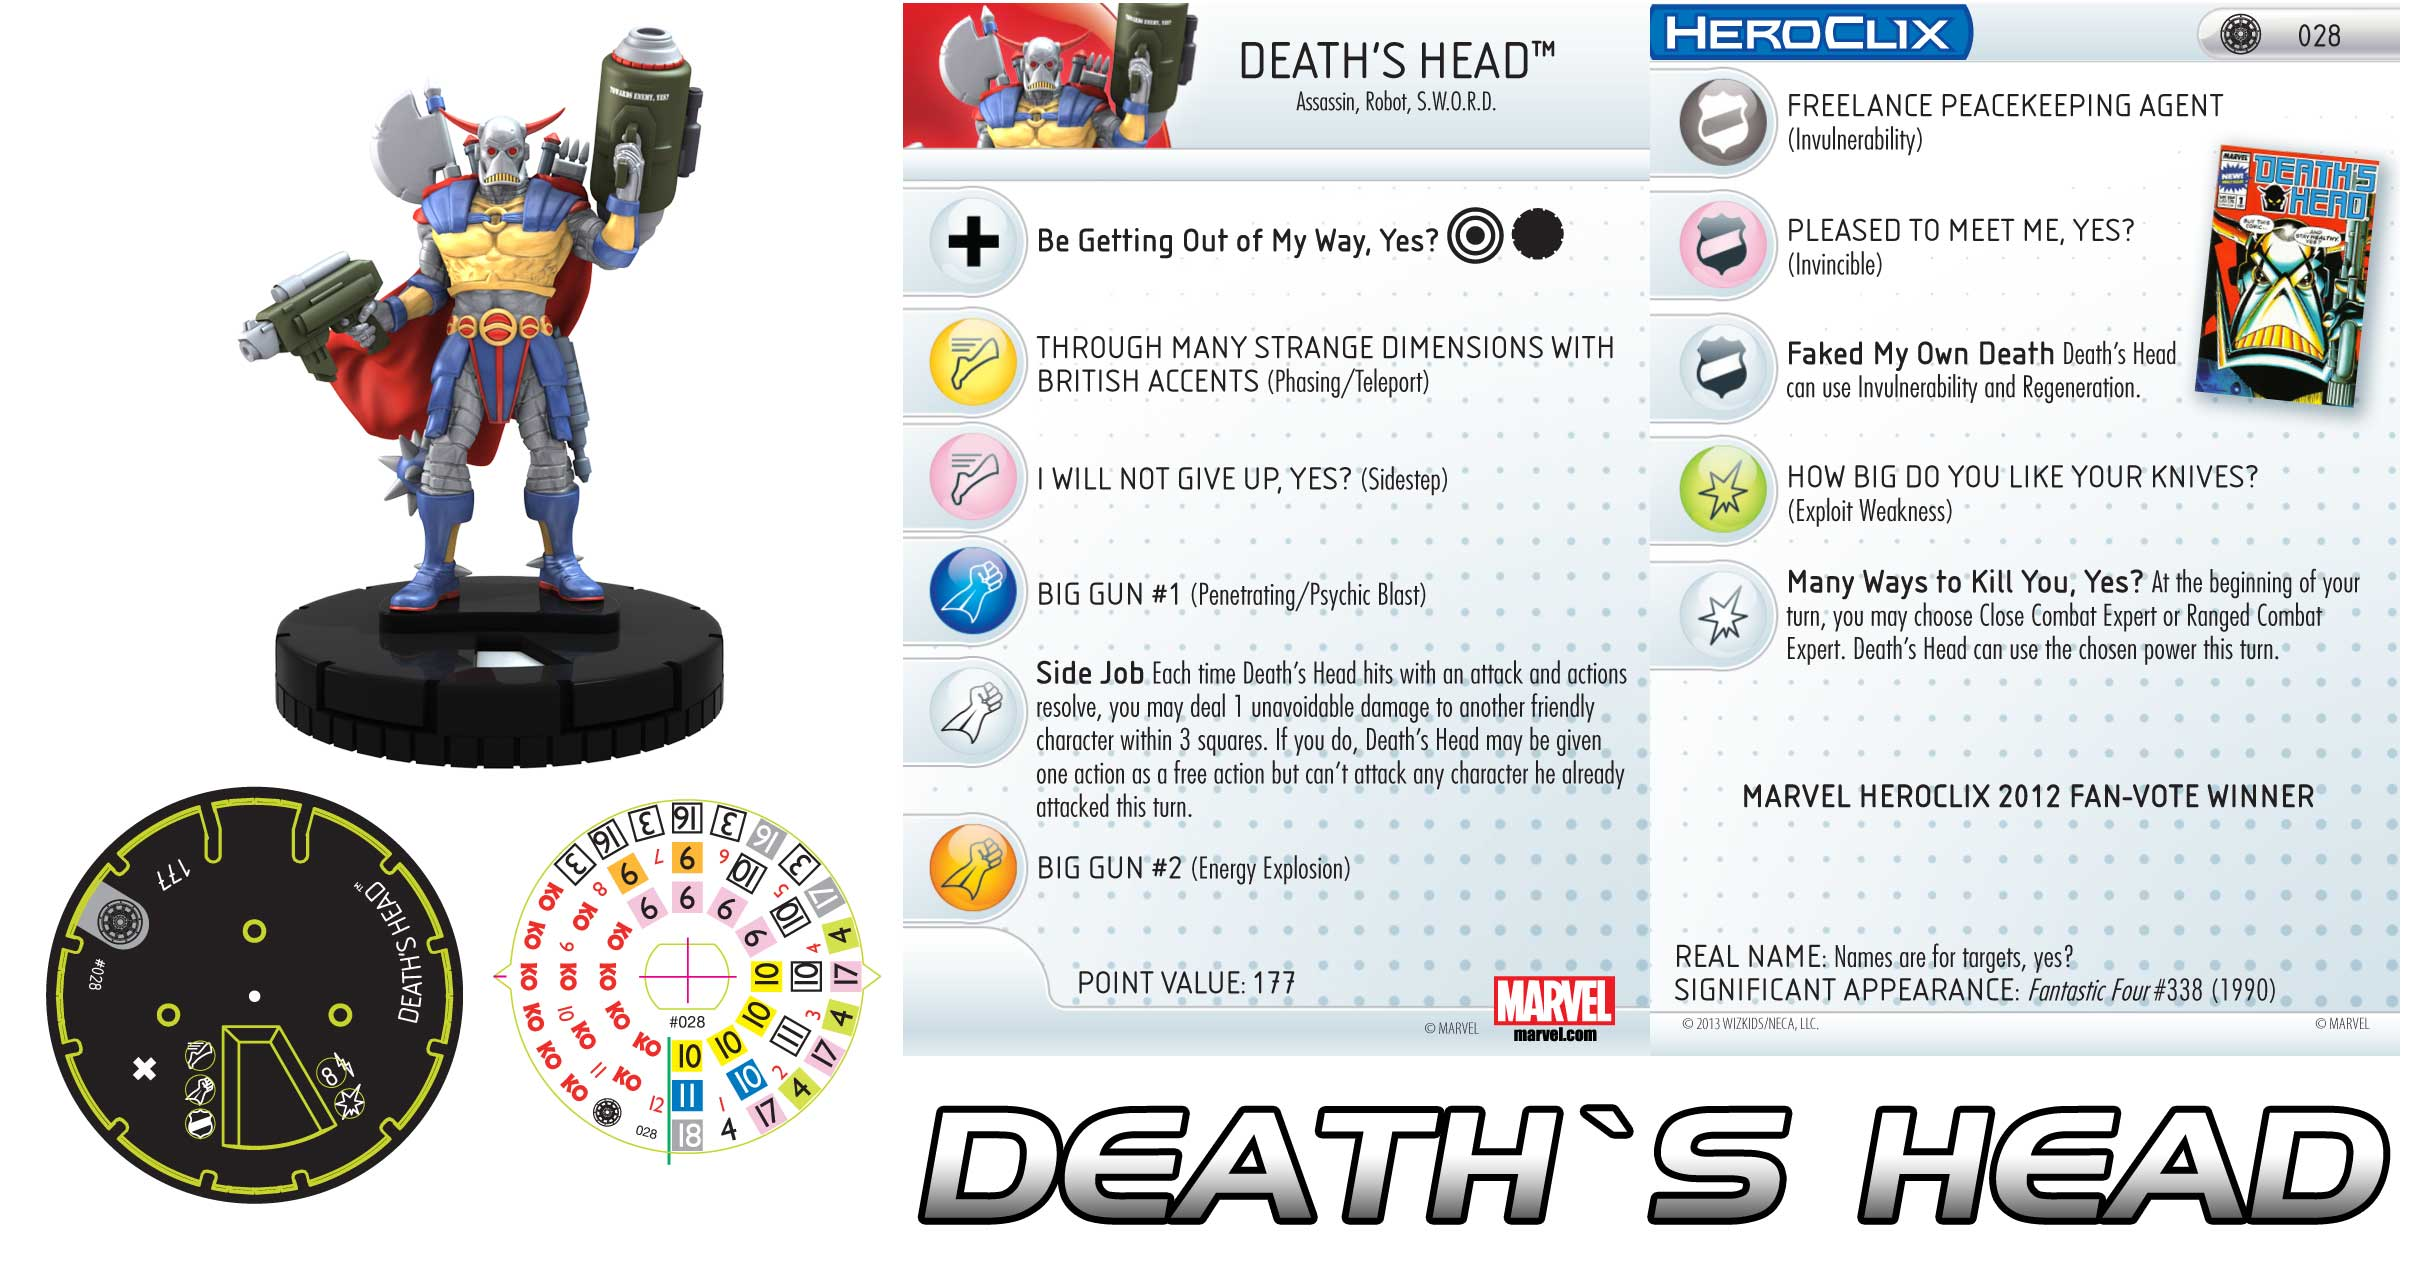 Heroclix Death's Head Profile